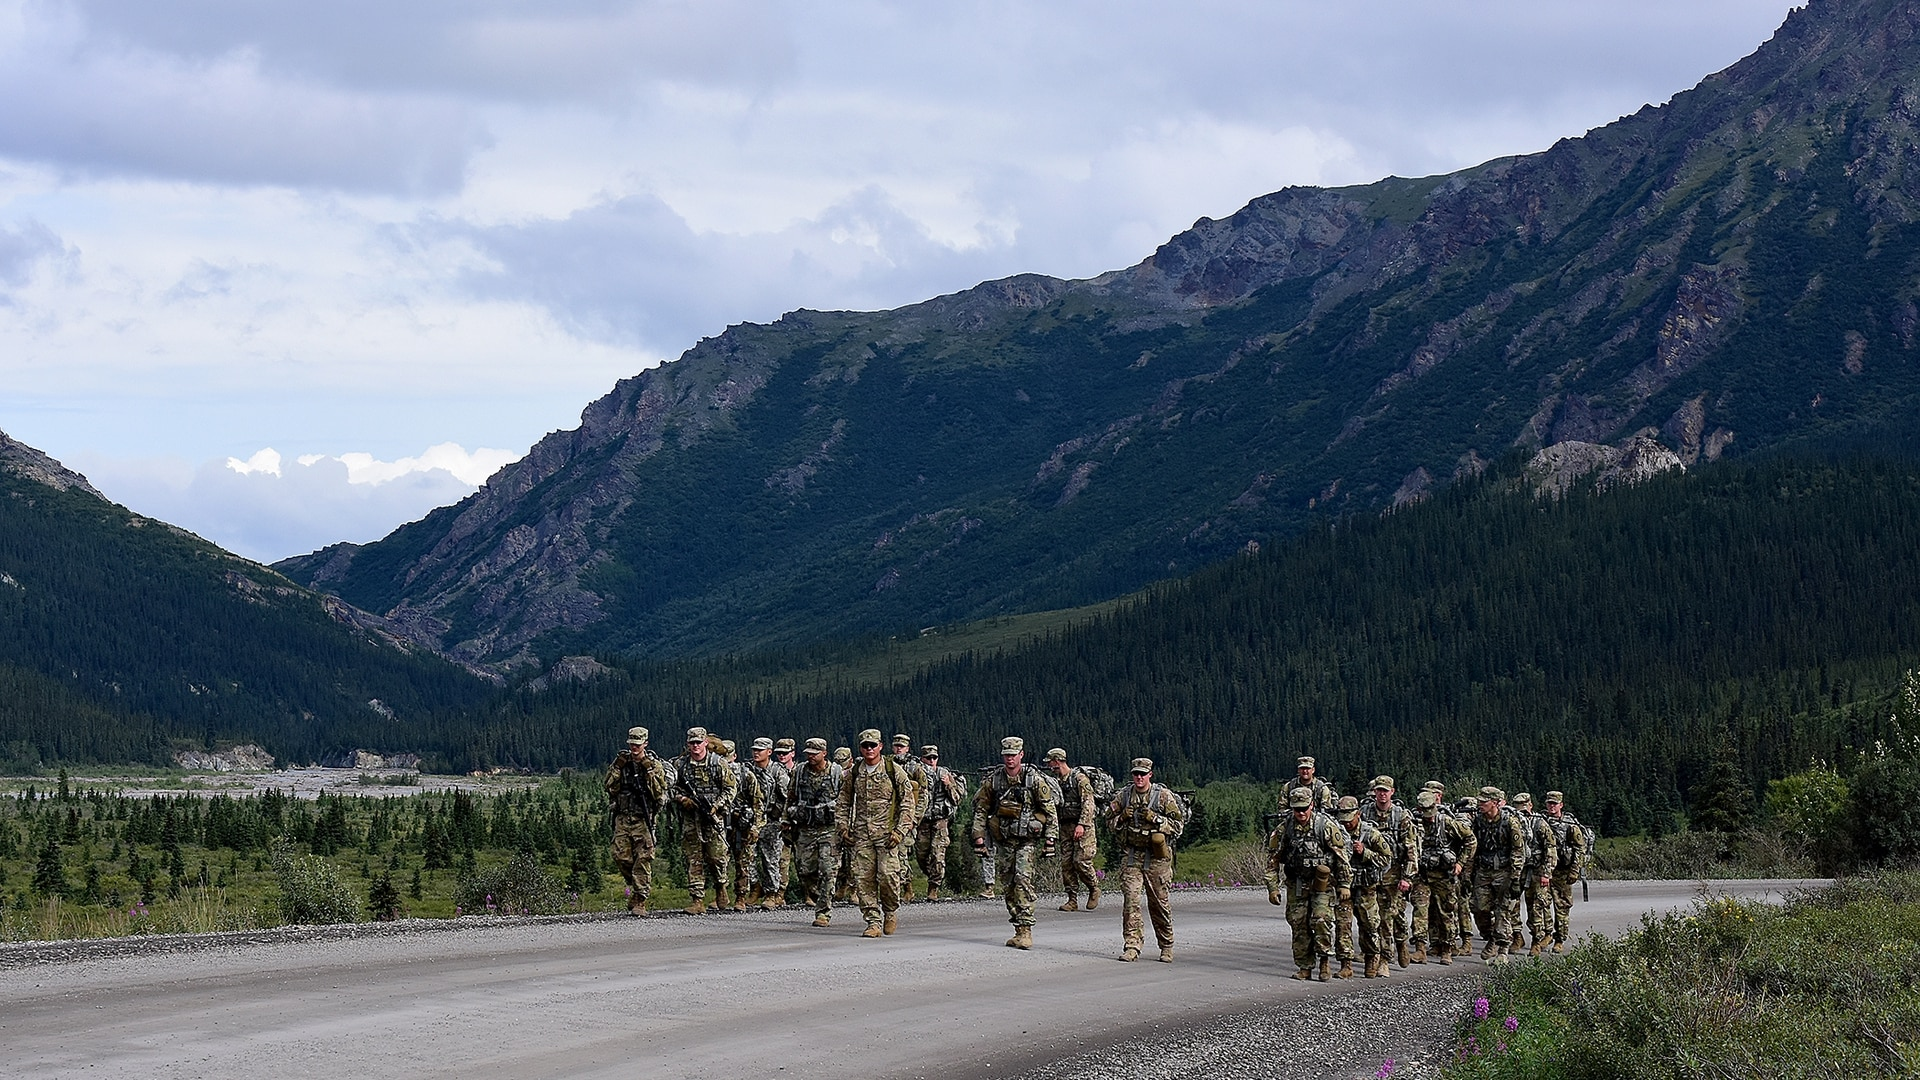 Soldiers assigned to 1st Stryker Brigade Combat Team, 25th Infantry Division, take part in a 26.2-mile foot march in Denali National Park, Alaska, July 26, 2017. (John Pennell/Army)